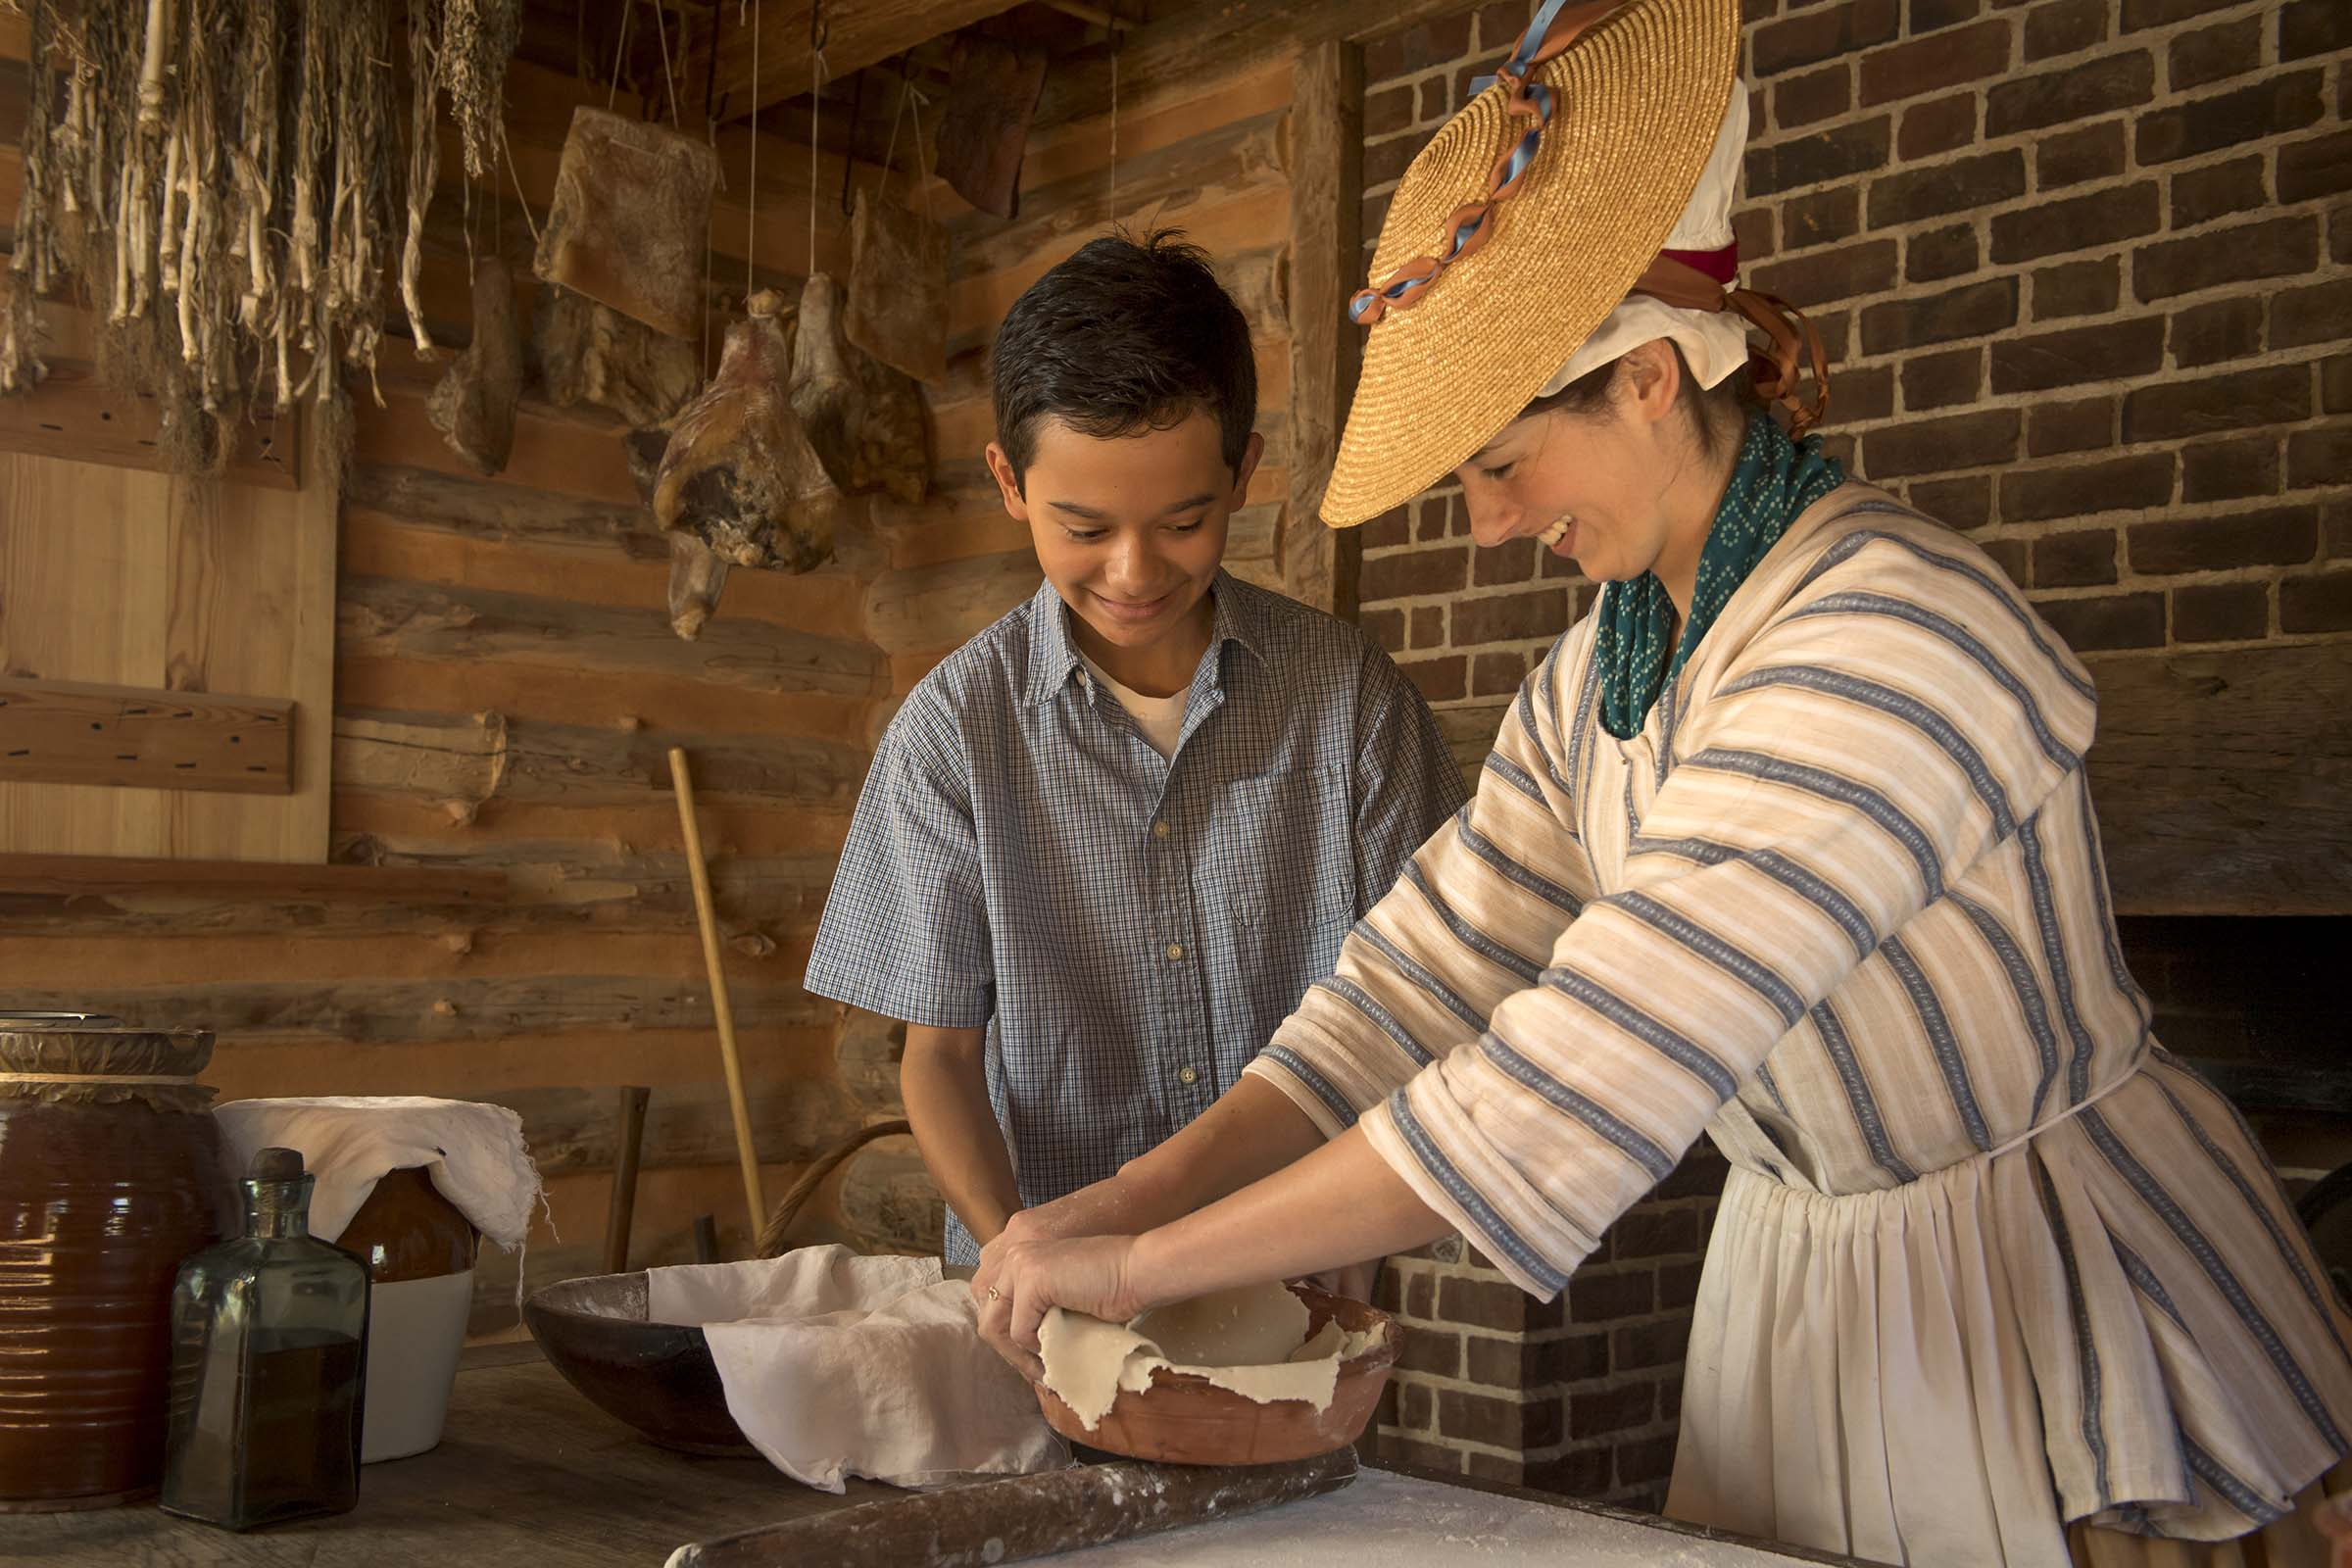 Making pie crust american revolution museum at yorktown